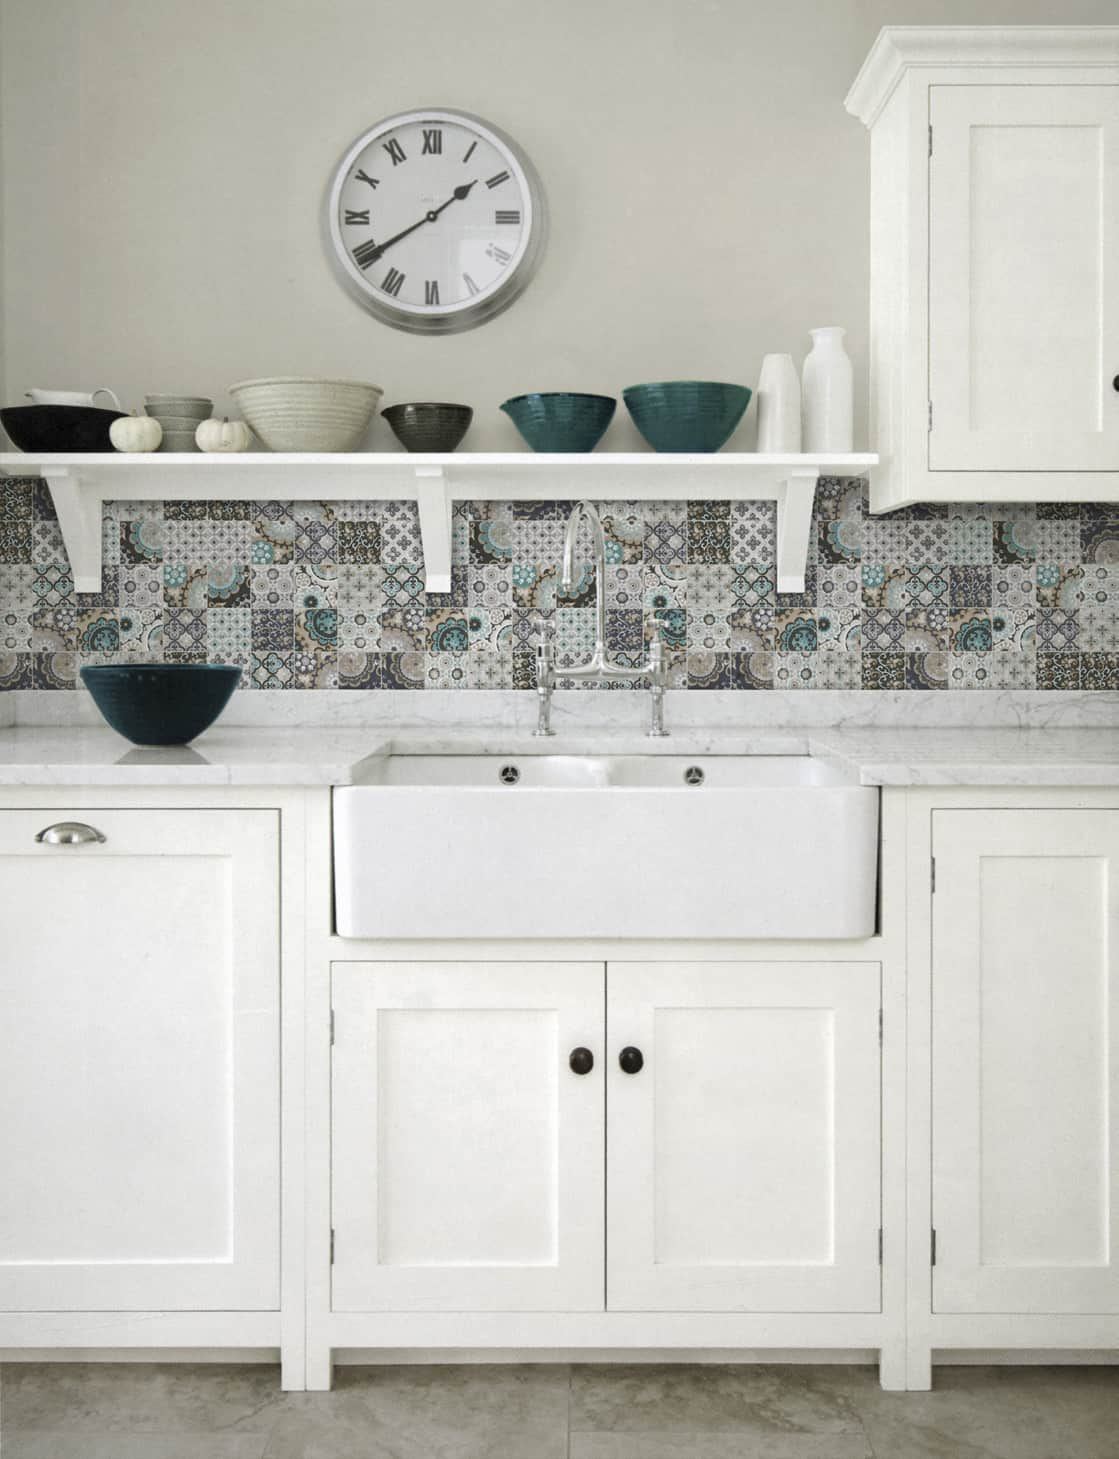 Patchwork Backsplash for Country Style Kitchen Ideas - Homestead by on country kitchen bedrooms, country kitchen backsplash tile, country kitchen wallpaper ideas, country kitchen plain and simple, country kitchen ideas and colors, country kitchen trends, country kitchen glass backsplash, country kitchen white ideas, country cabinet hardware ideas, black and white kitchen floor ideas, country style kitchen remodel, country stairs ideas, off white cabinet kitchen ideas, country kitchen with tin backsplash, country spa ideas, country kitchen painted floors, french country kitchen ideas, country kitchen beadboard backsplash, kitchen design ideas, country kitchen designs,